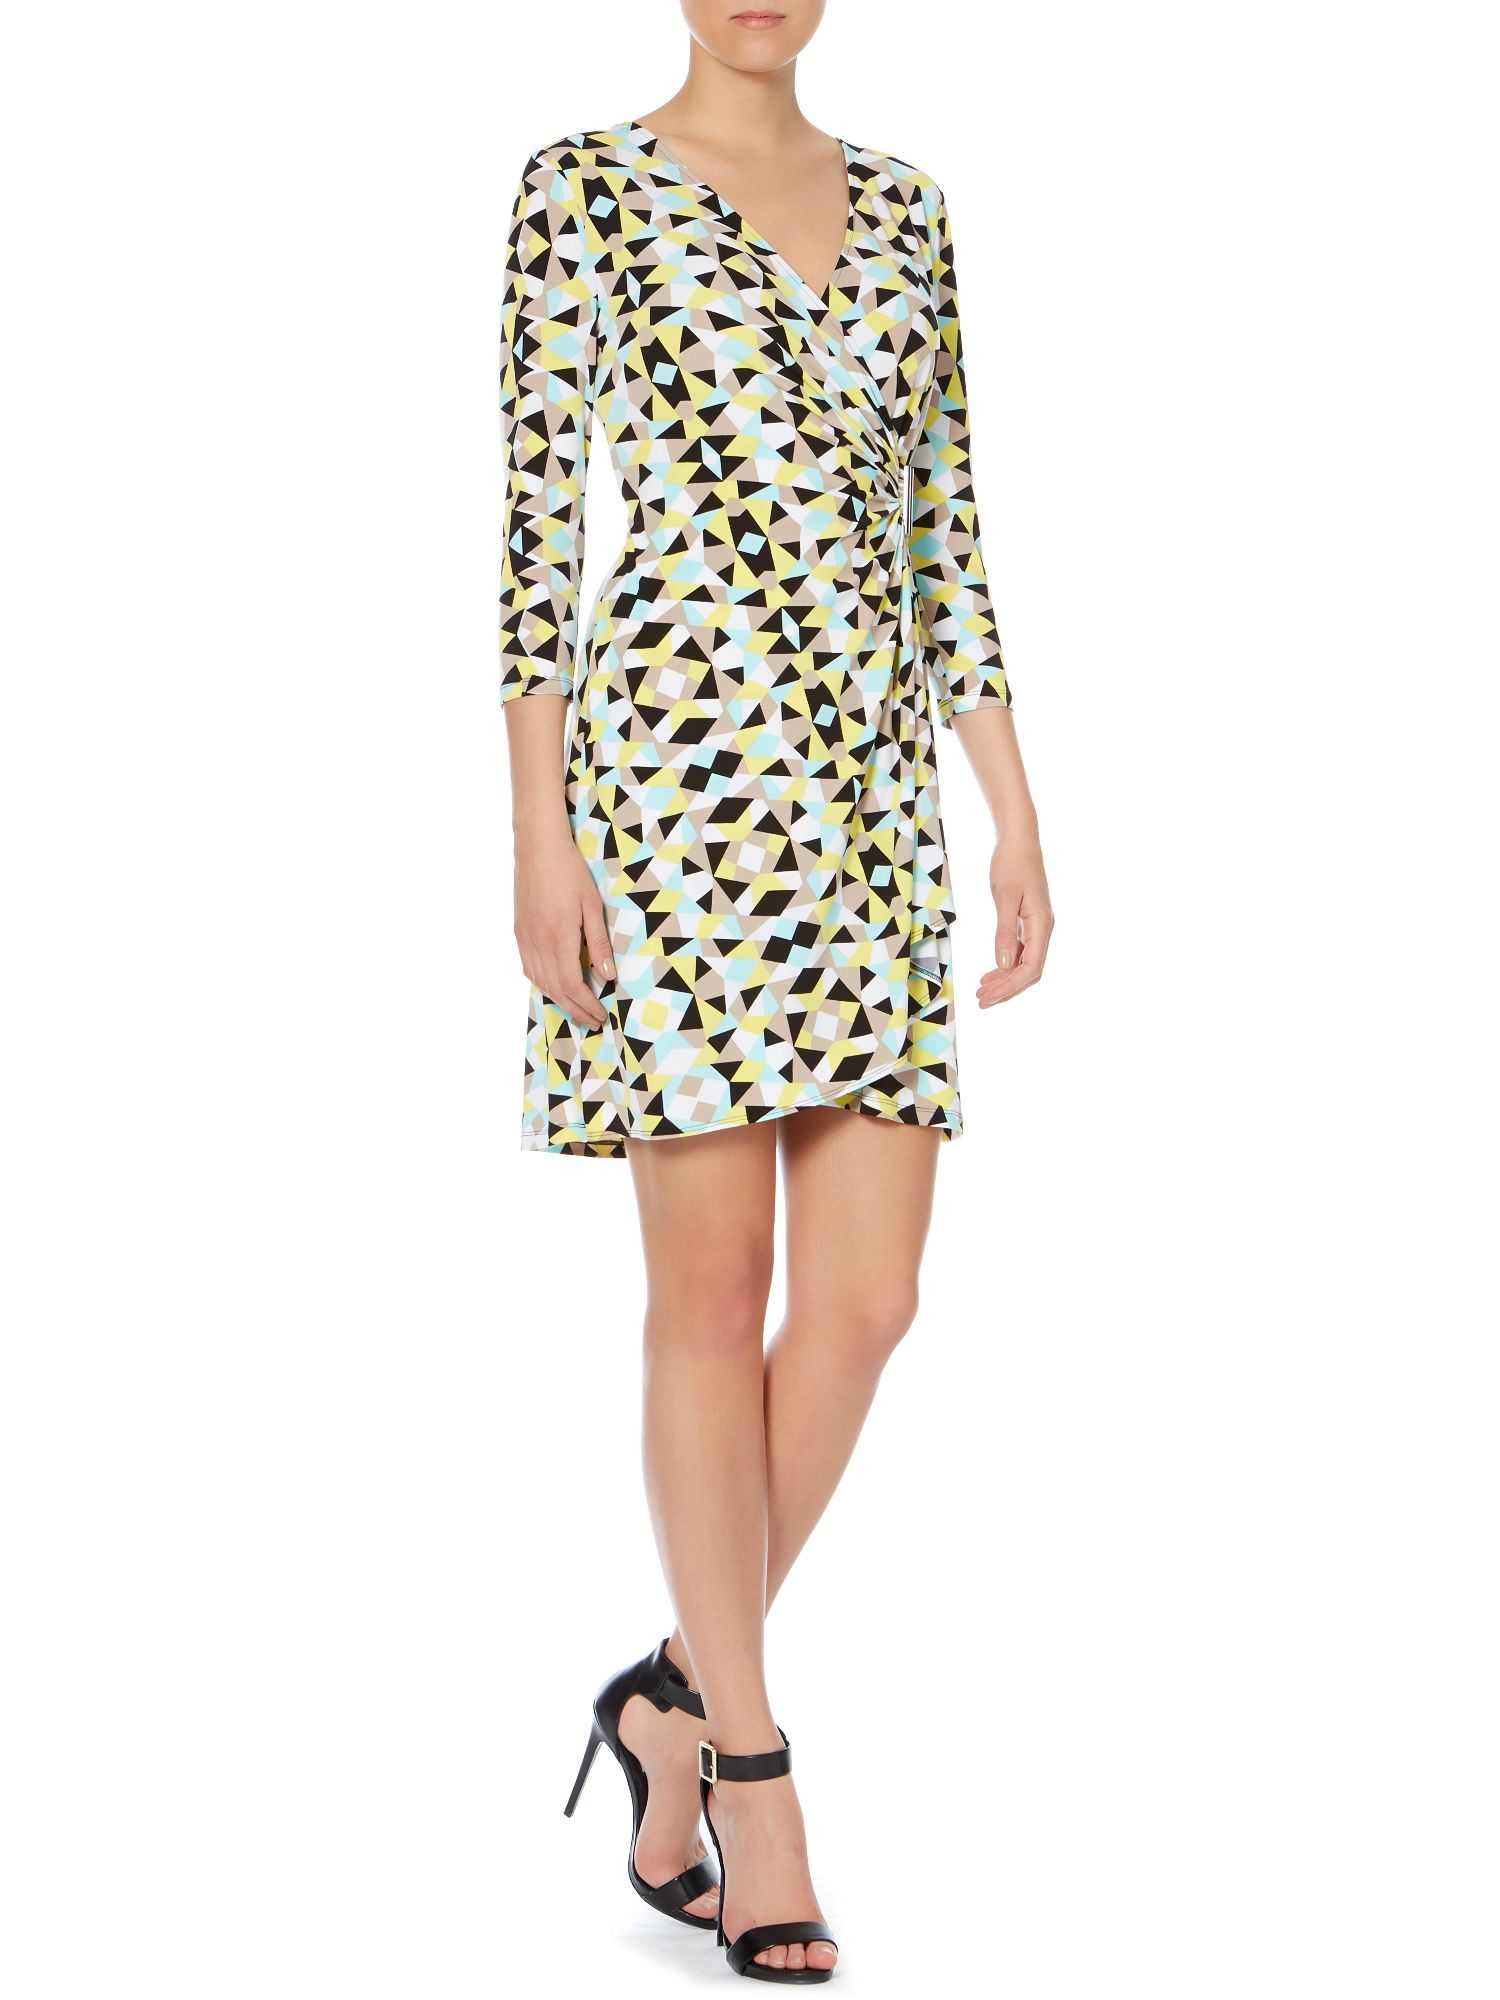 Printed wrap dress with hardware detail